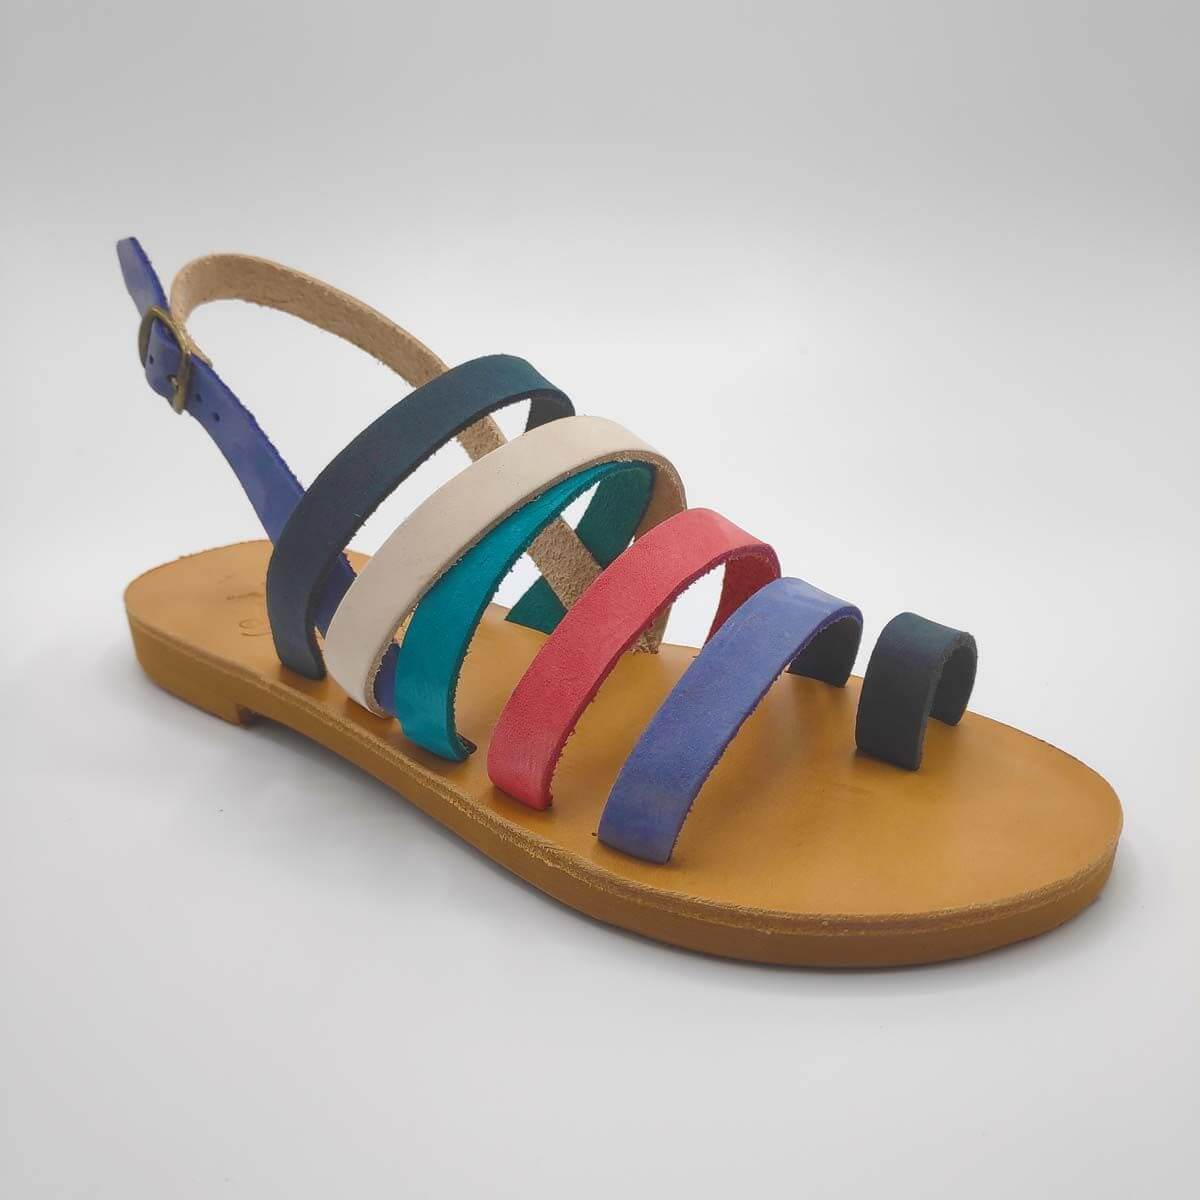 Colourful Strappy Leather Sandals with Toe Ring and Backstrap - Athena Side View Single